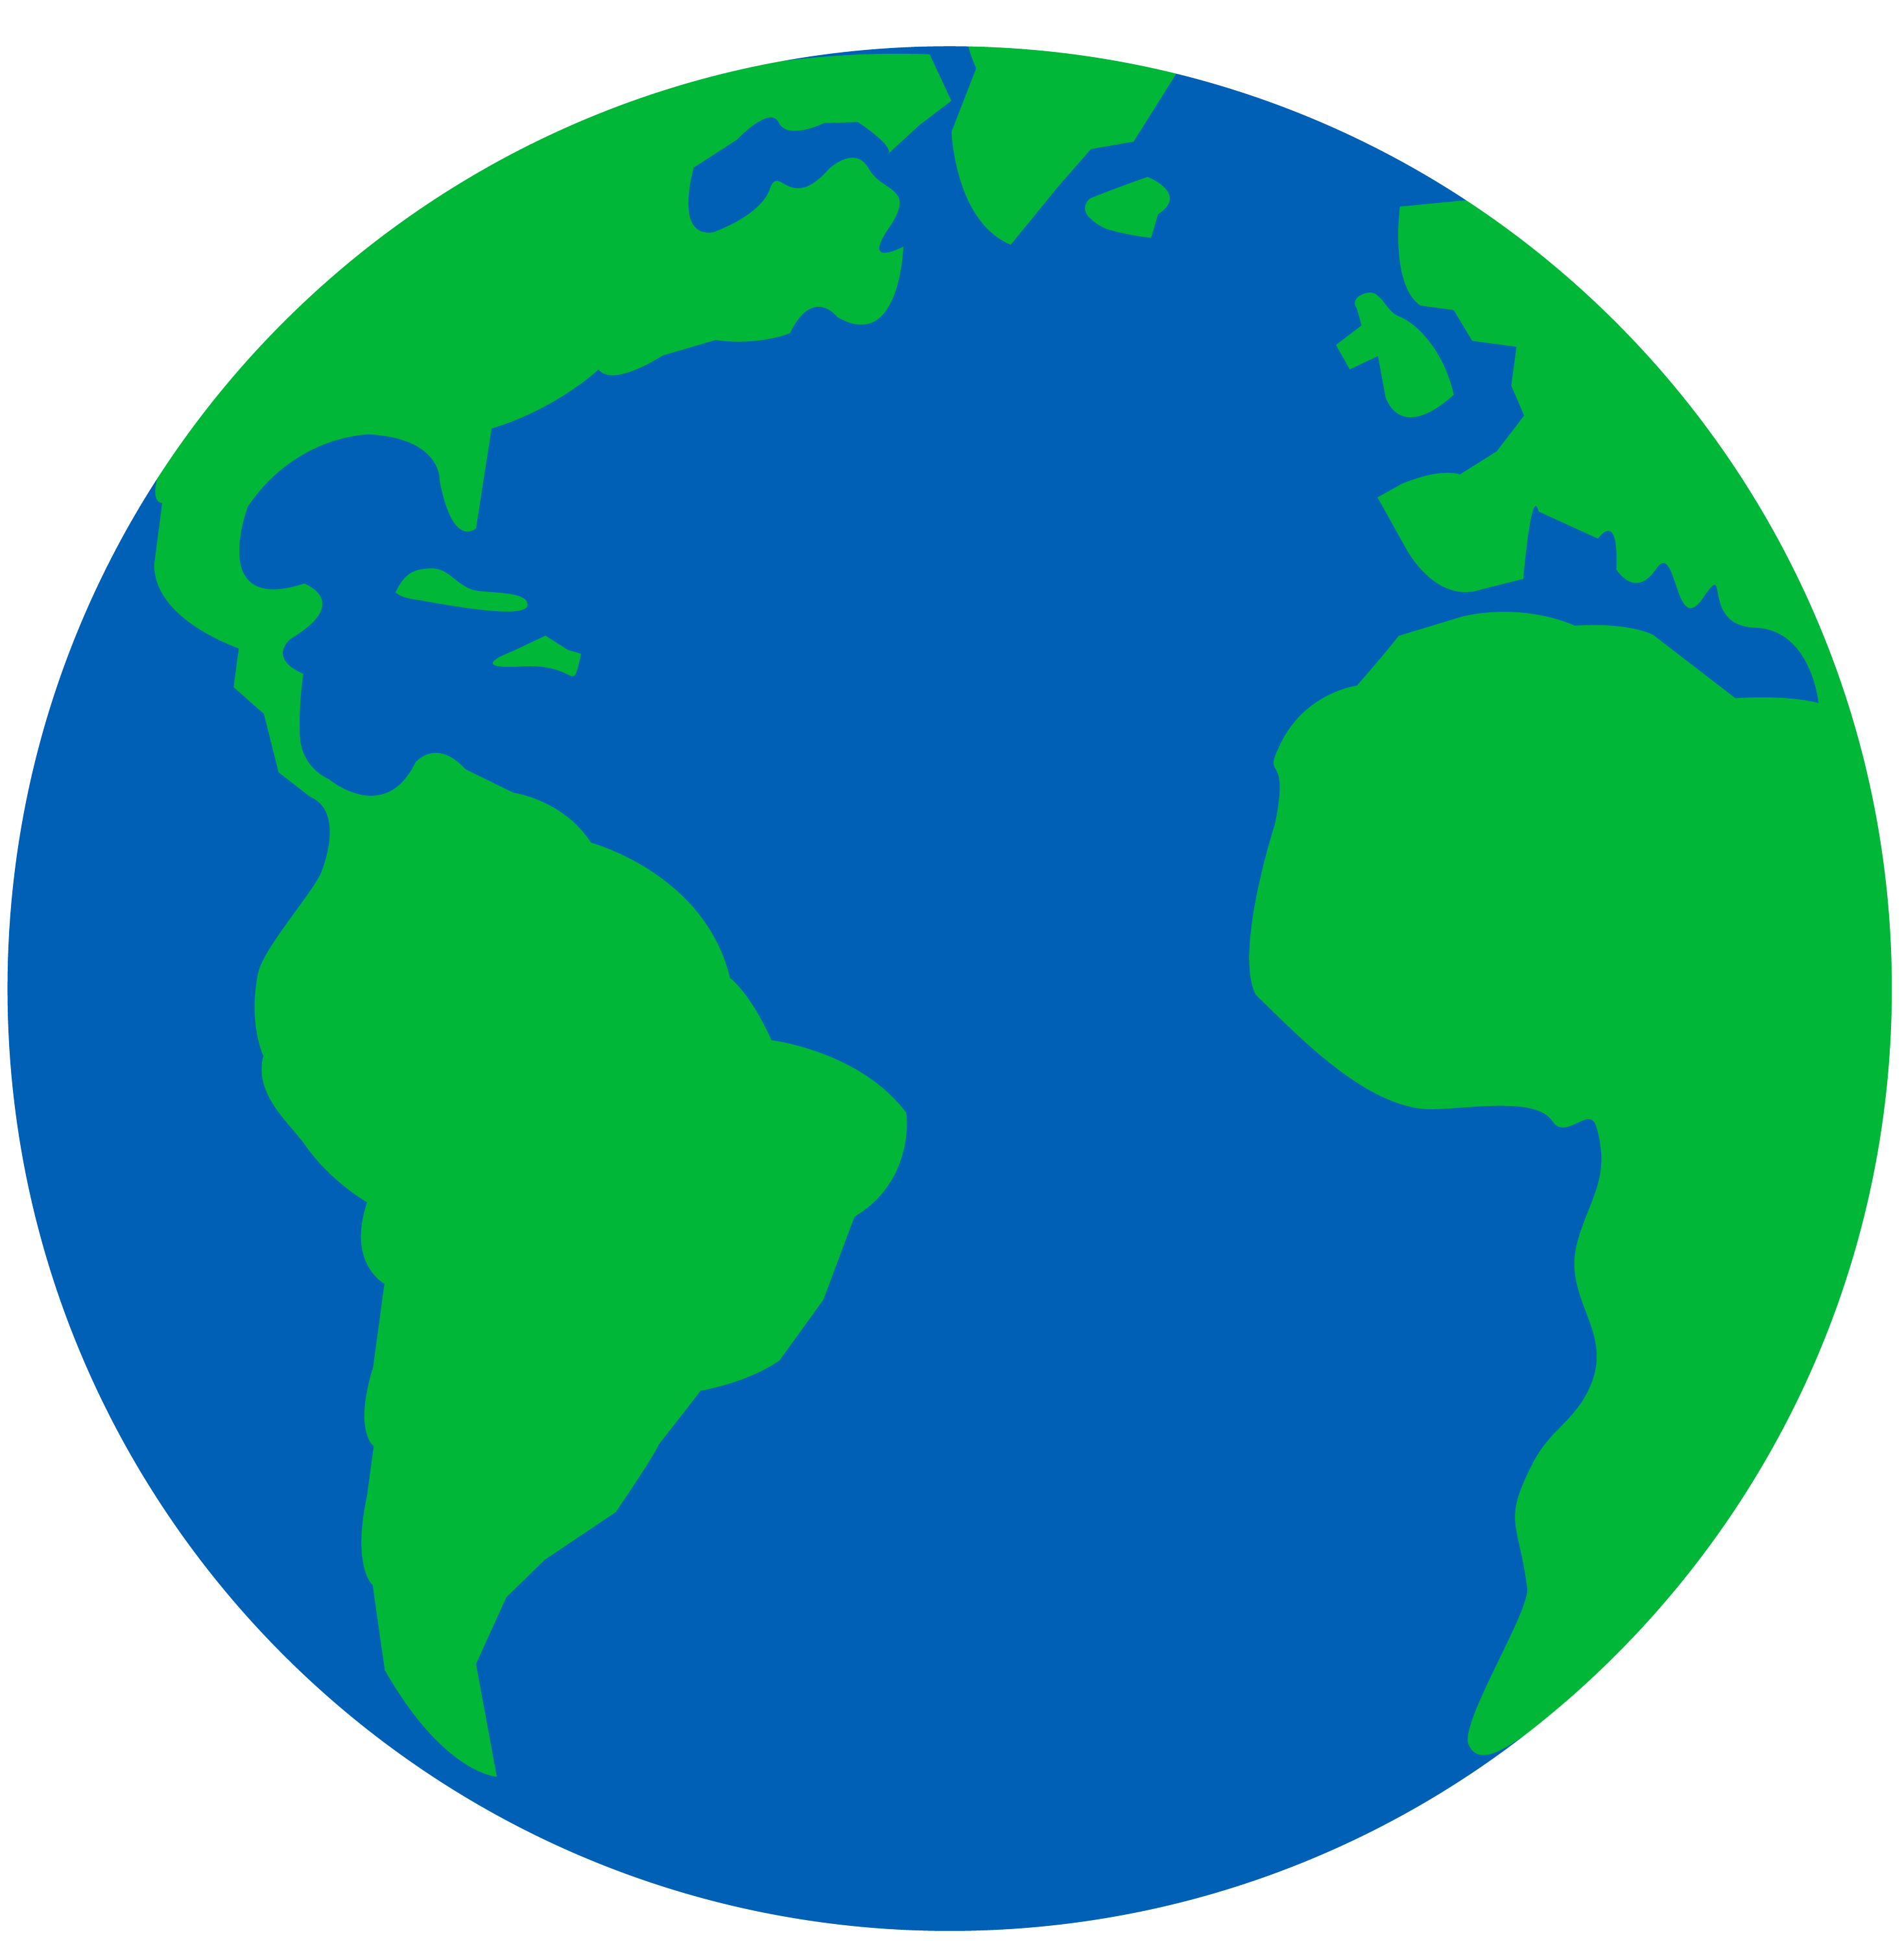 http://sweetclipart.com/multisite/sweetclipart/files/planet_earth.png